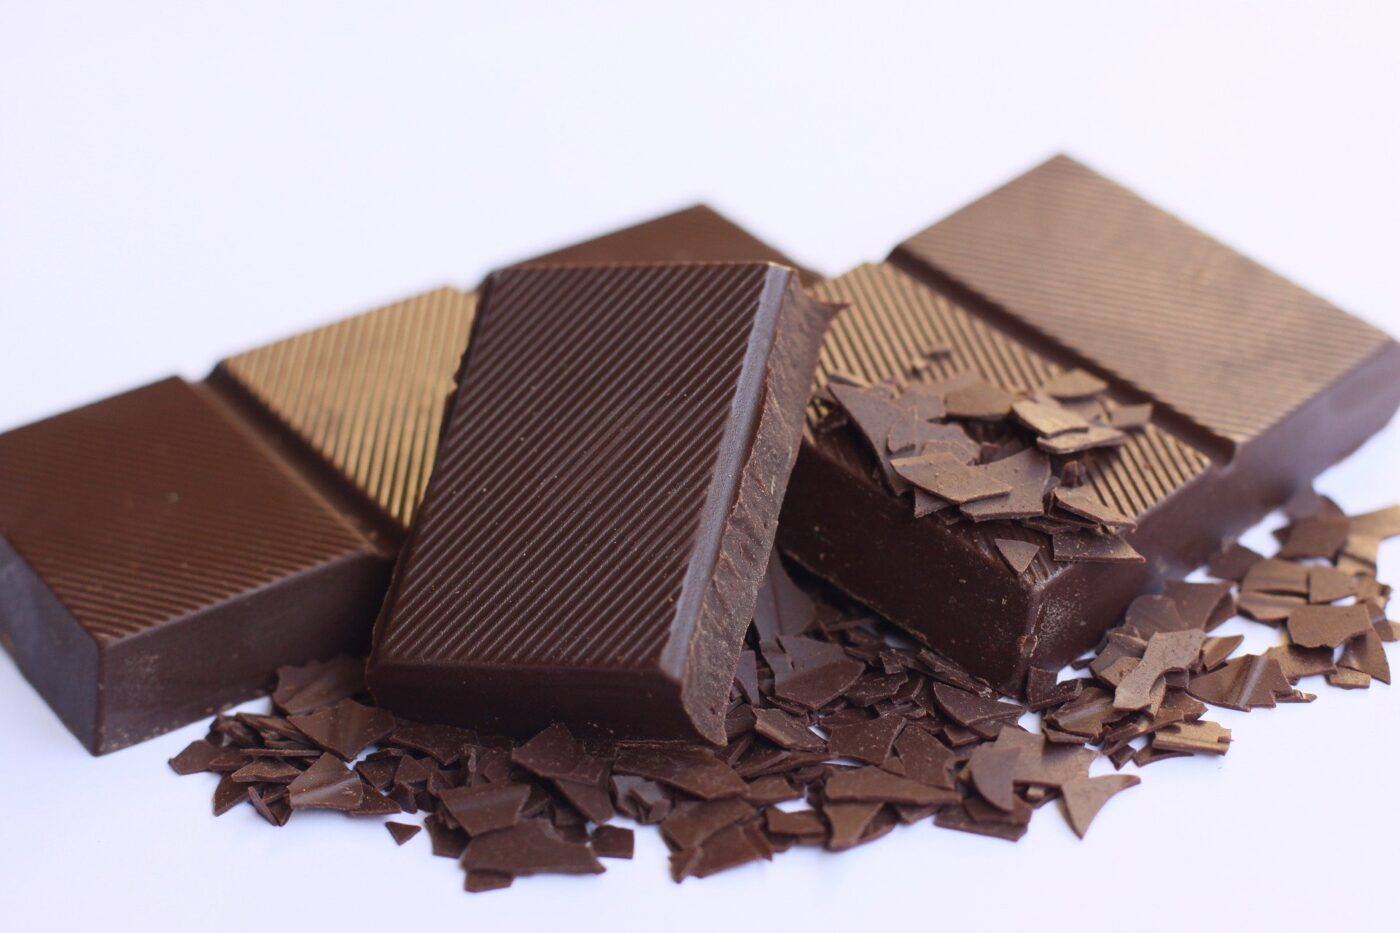 Everything you need to know about cooking with chocolate